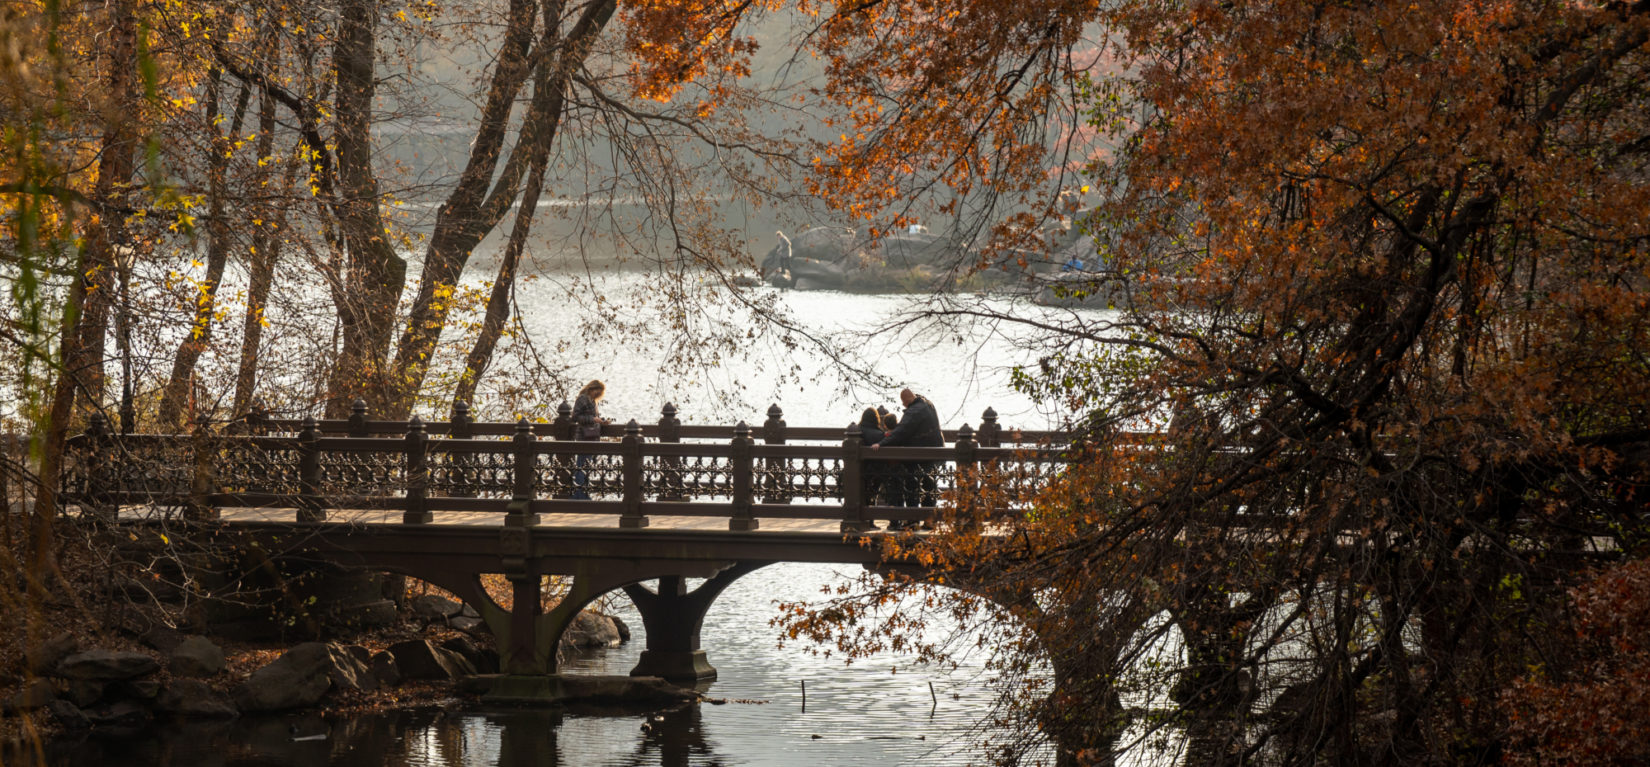 Oak Bridge Fall 20191125 07423